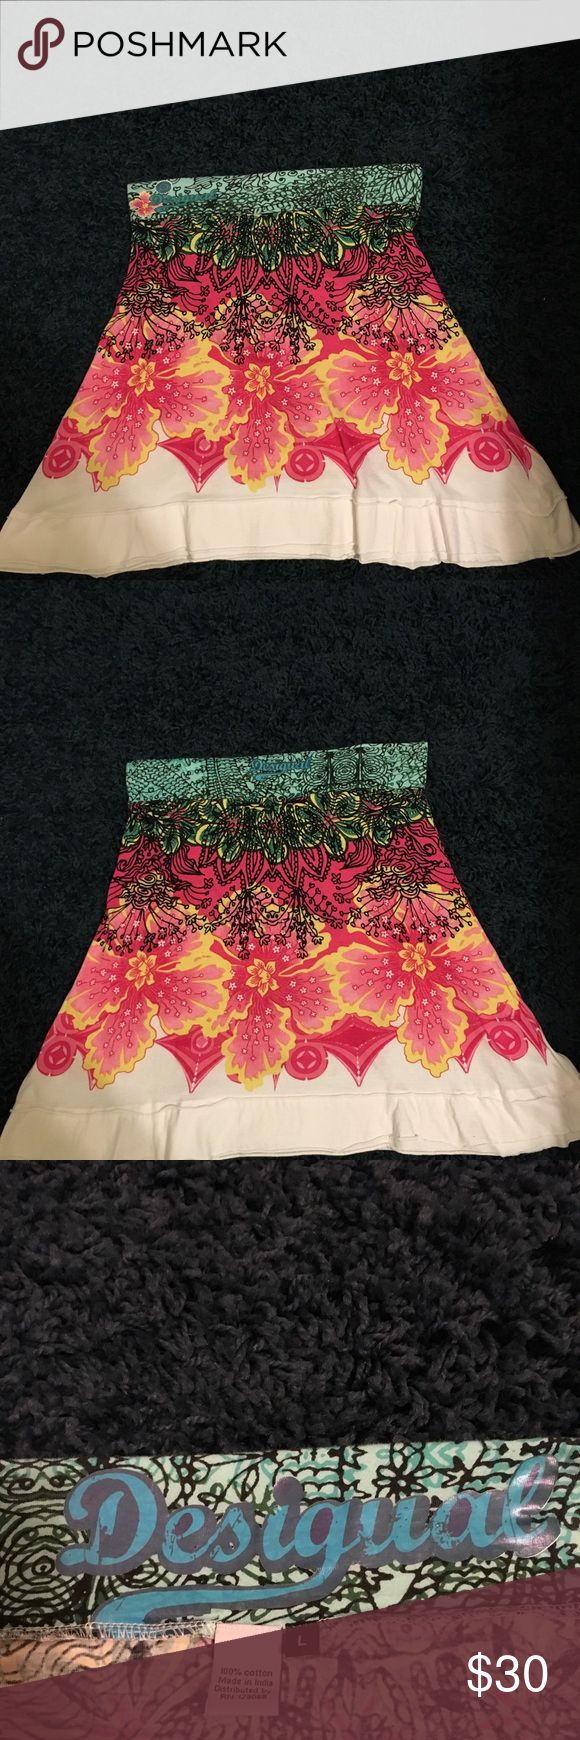 Desigual Skirt Beautiful Desigual cotton A-line skirt.  Multi colored with hot pink as the eye catching color on a white background.  It has a flat wide elastic waistband. Worn a few times and in very good condition.Fun and comfortable.  Great spring piece. Desigual Skirts Mini